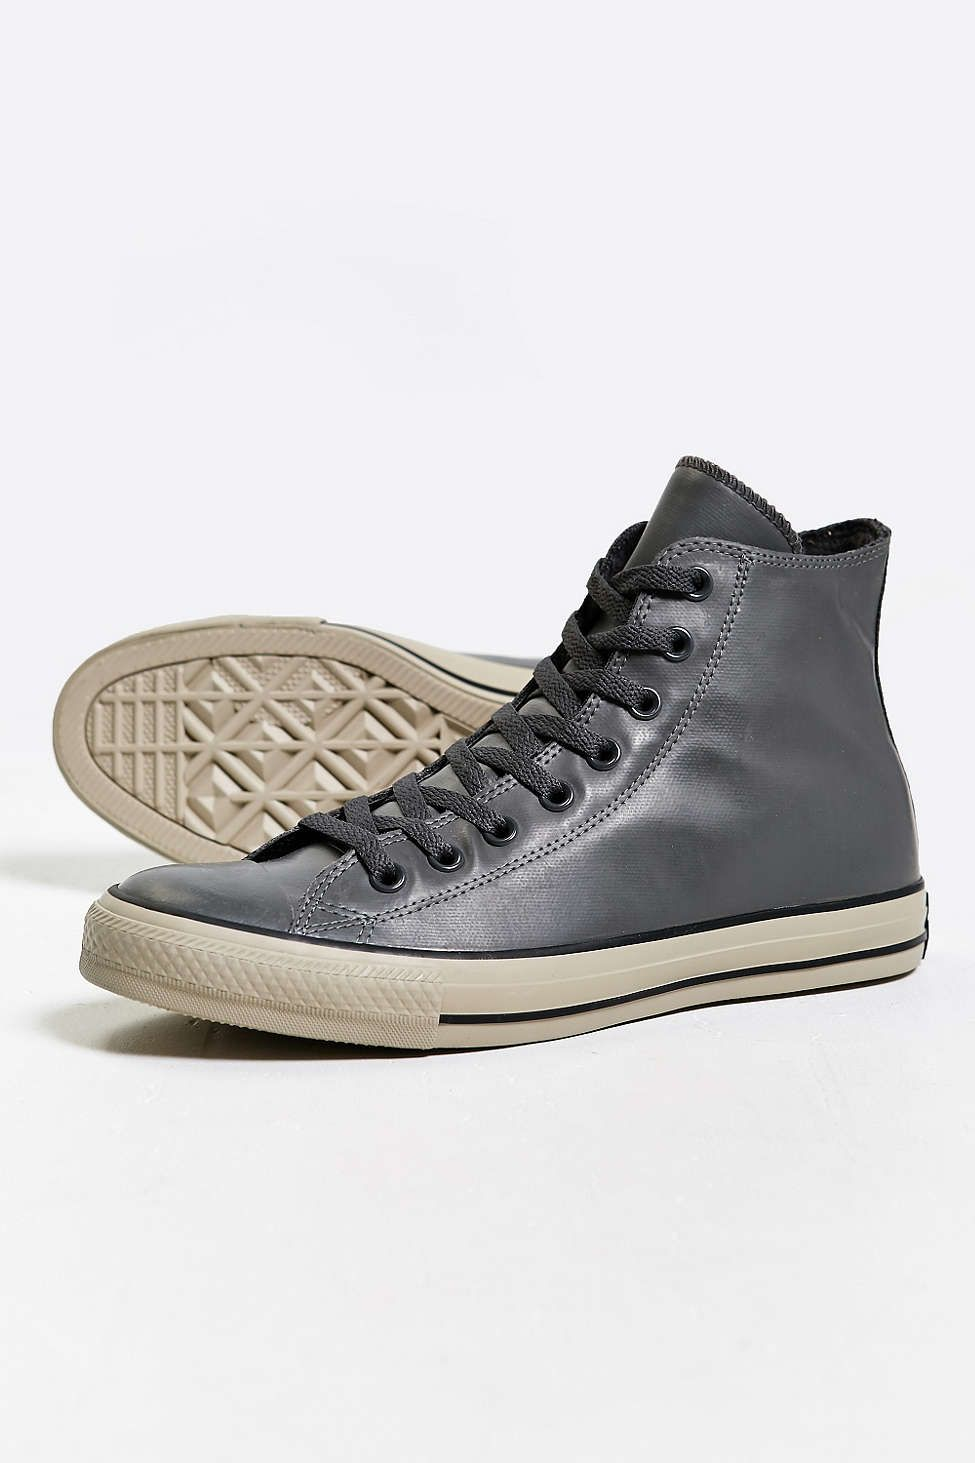 f9bf0c0781b7 Converse Chuck Taylor All Star Rubber High-Top Sneakerboot